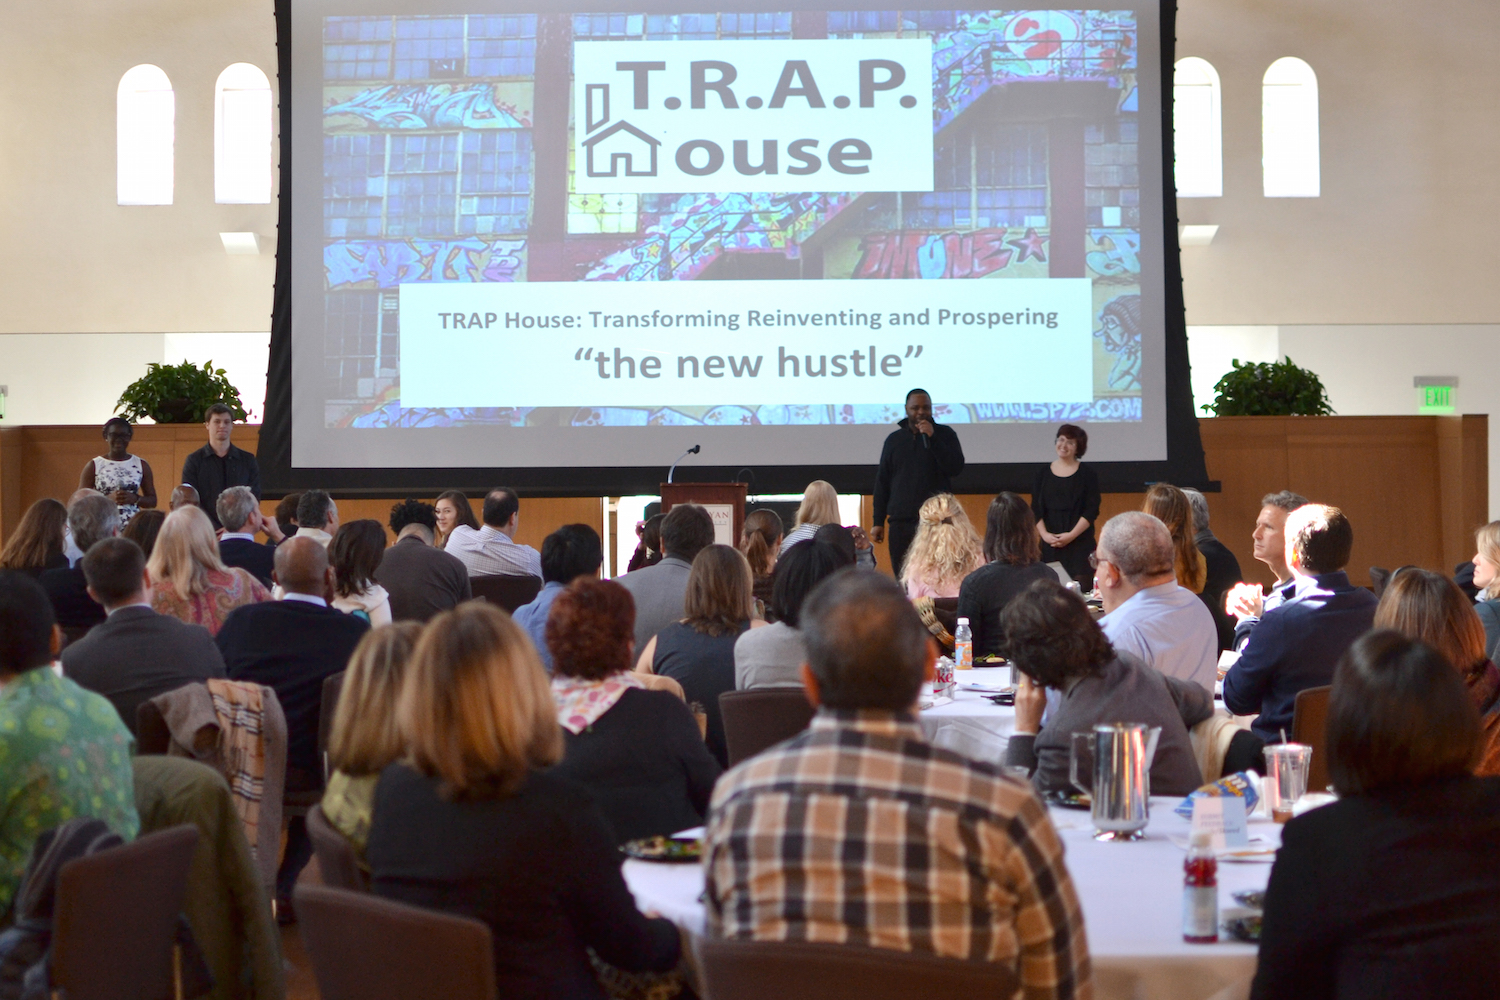 Members of team behind TRAP House, one of the three social ventures that won a seed grant, presented their pitch before a live audience of the Board of Trustees, Patricelli Center Advisory Board and others. Presenting (from left to right) are Irvine Peck's-Agaya '18, Gabe Weinreb '18, Bashaun Brown, and Sara Eismont '18.